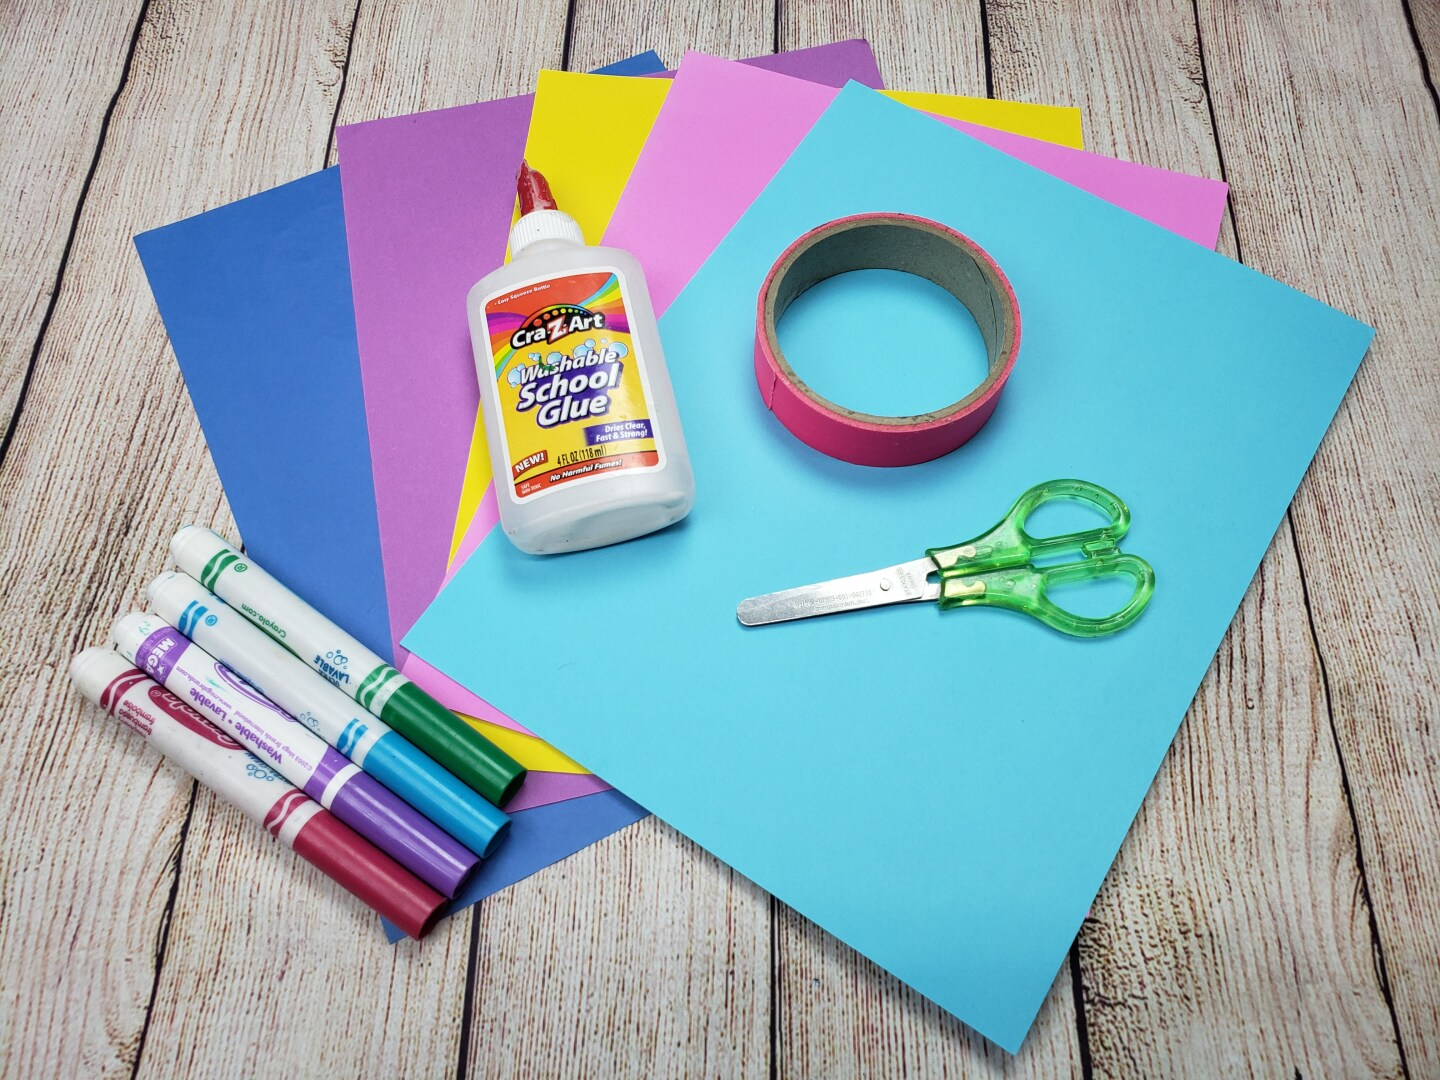 construction paper, markers, glue, tape and scissors are laid out on a wooden table